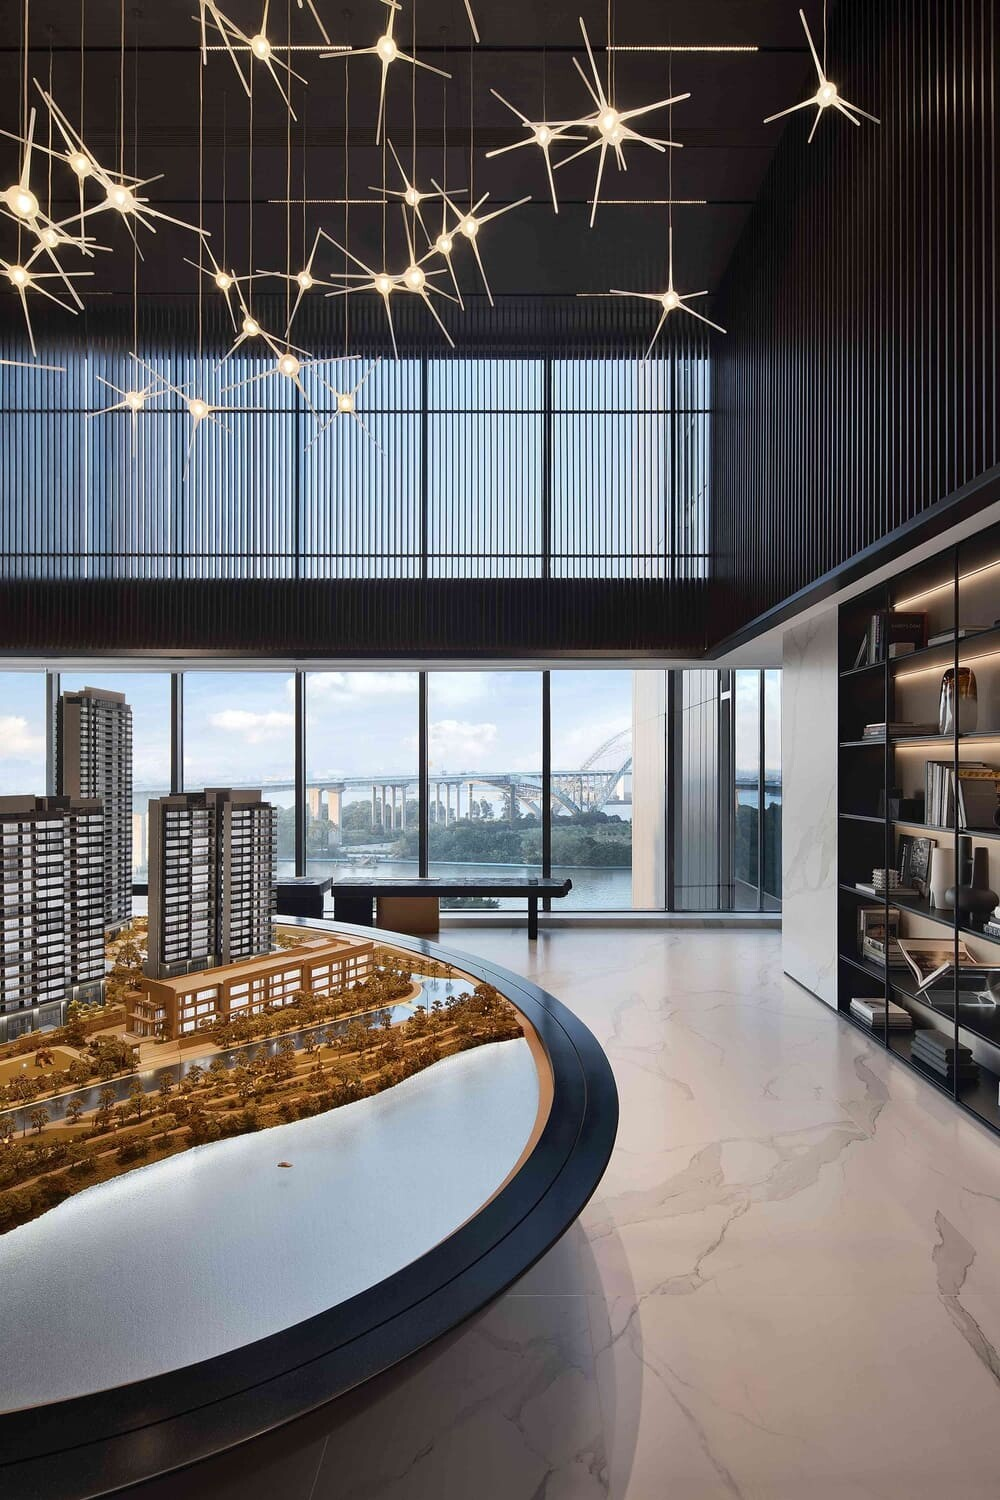 The Master: Luxury Residence by the Pearl River, Guangzhou